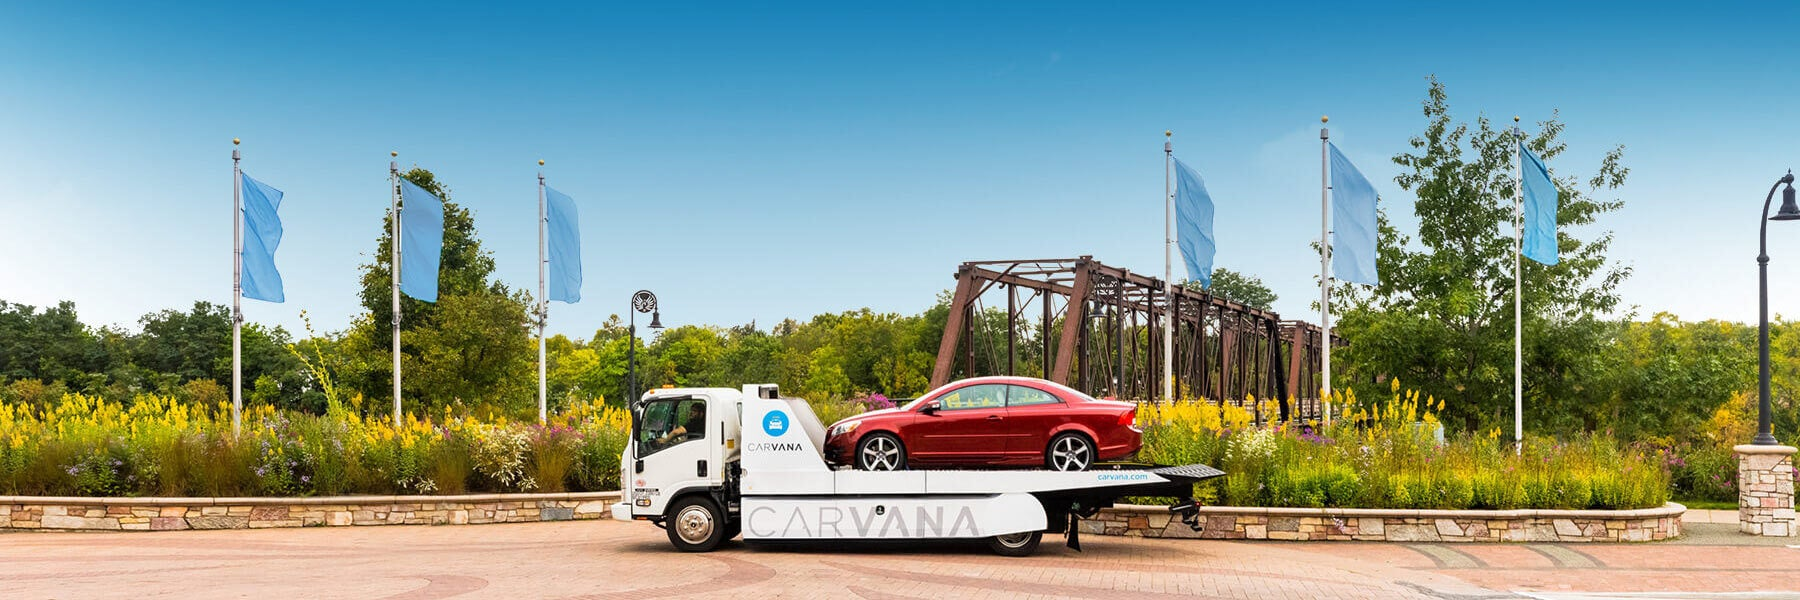 carvana buy finance used cars online at home delivery carvana buy finance used cars